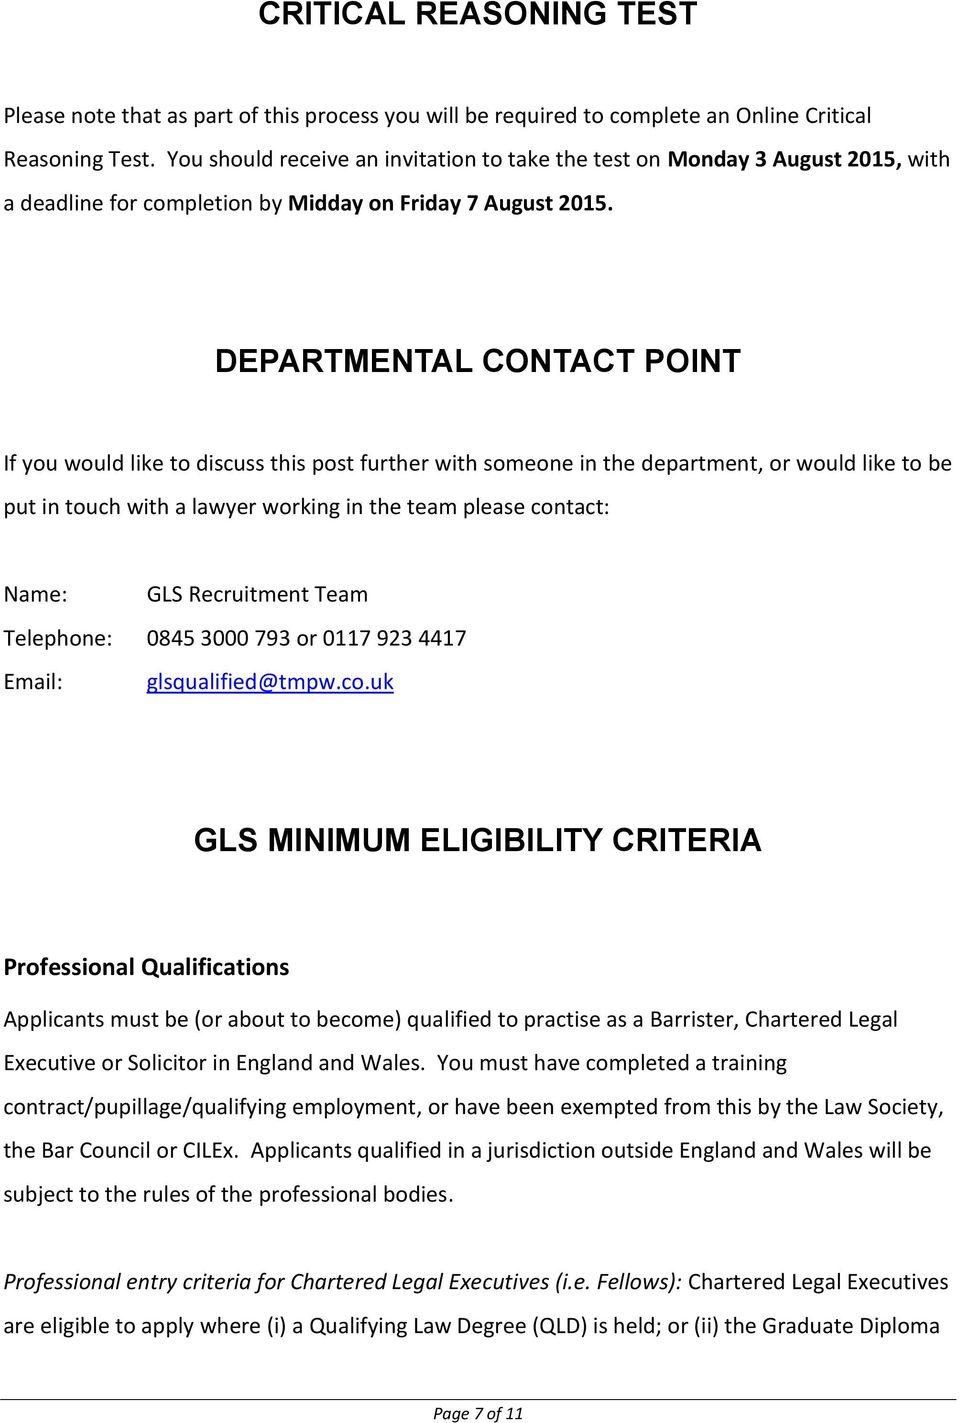 DEPARTMENTAL CONTACT POINT If you would like to discuss this post further with someone in the department, or would like to be put in touch with a lawyer working in the team please contact: Name: GLS